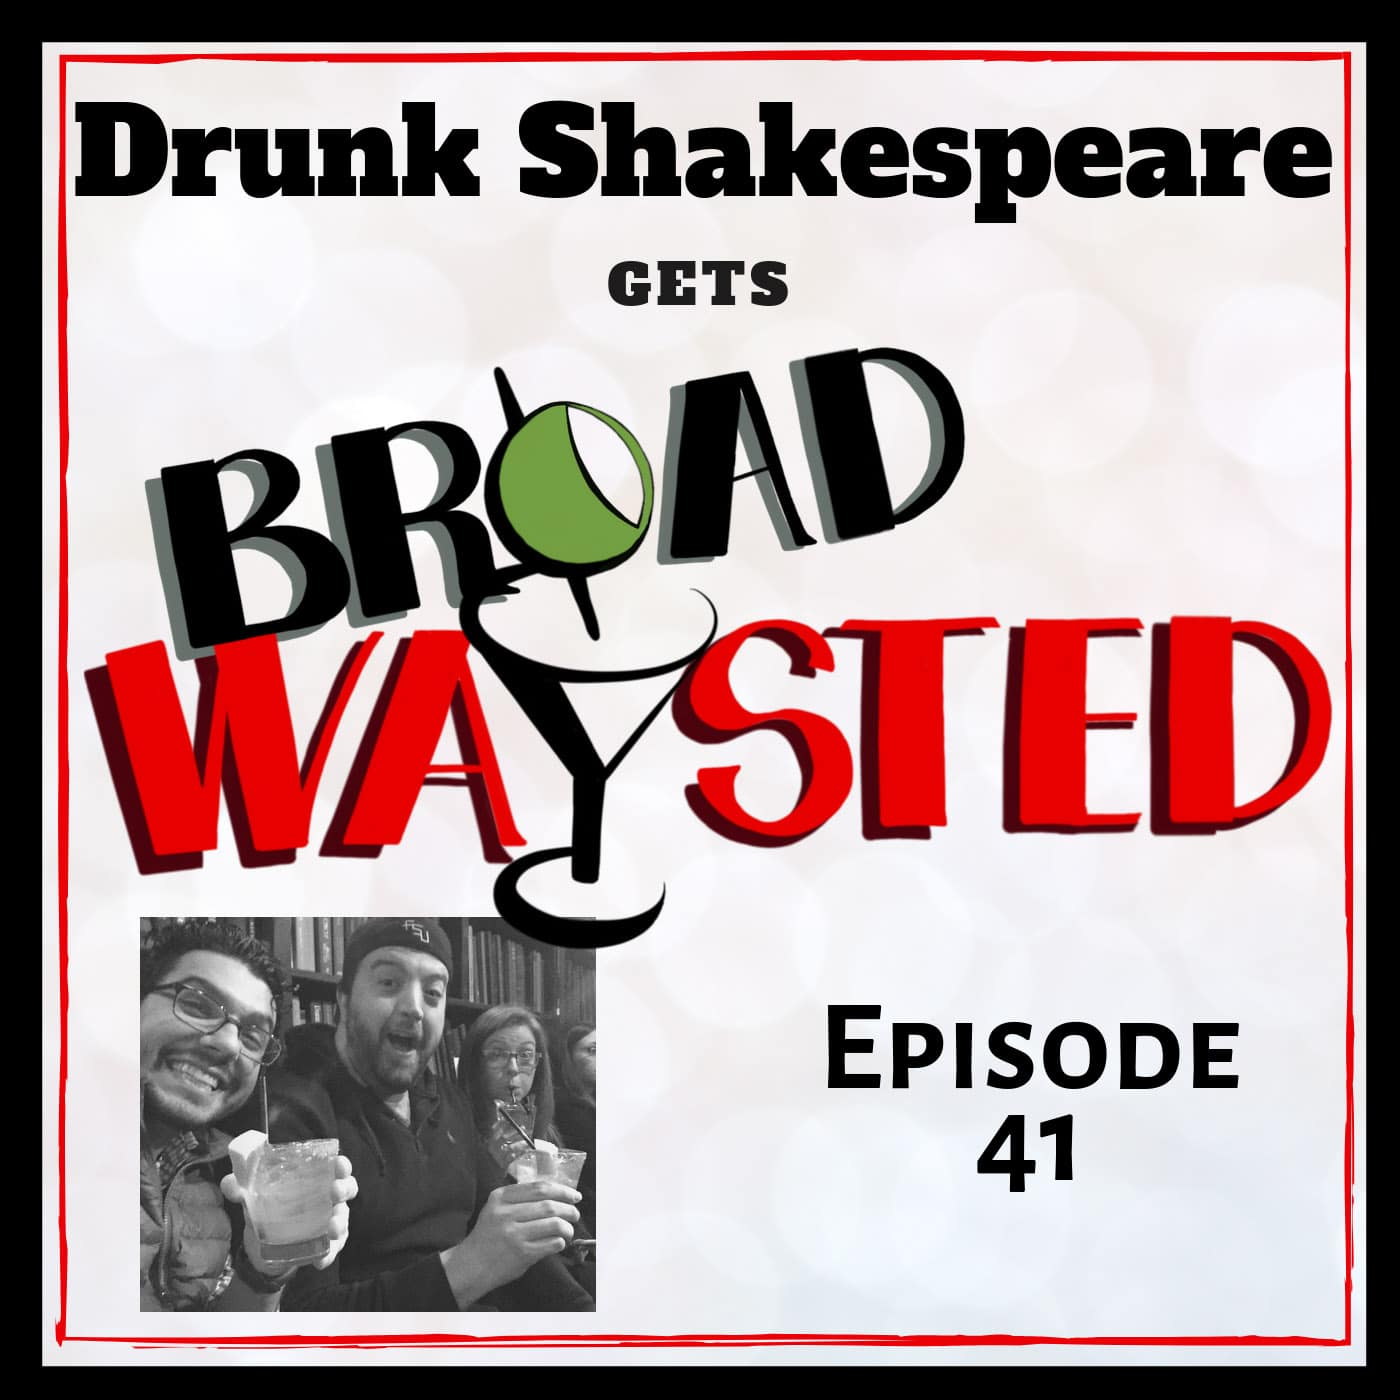 Broadwaysted Ep 41 Drunk Shakes